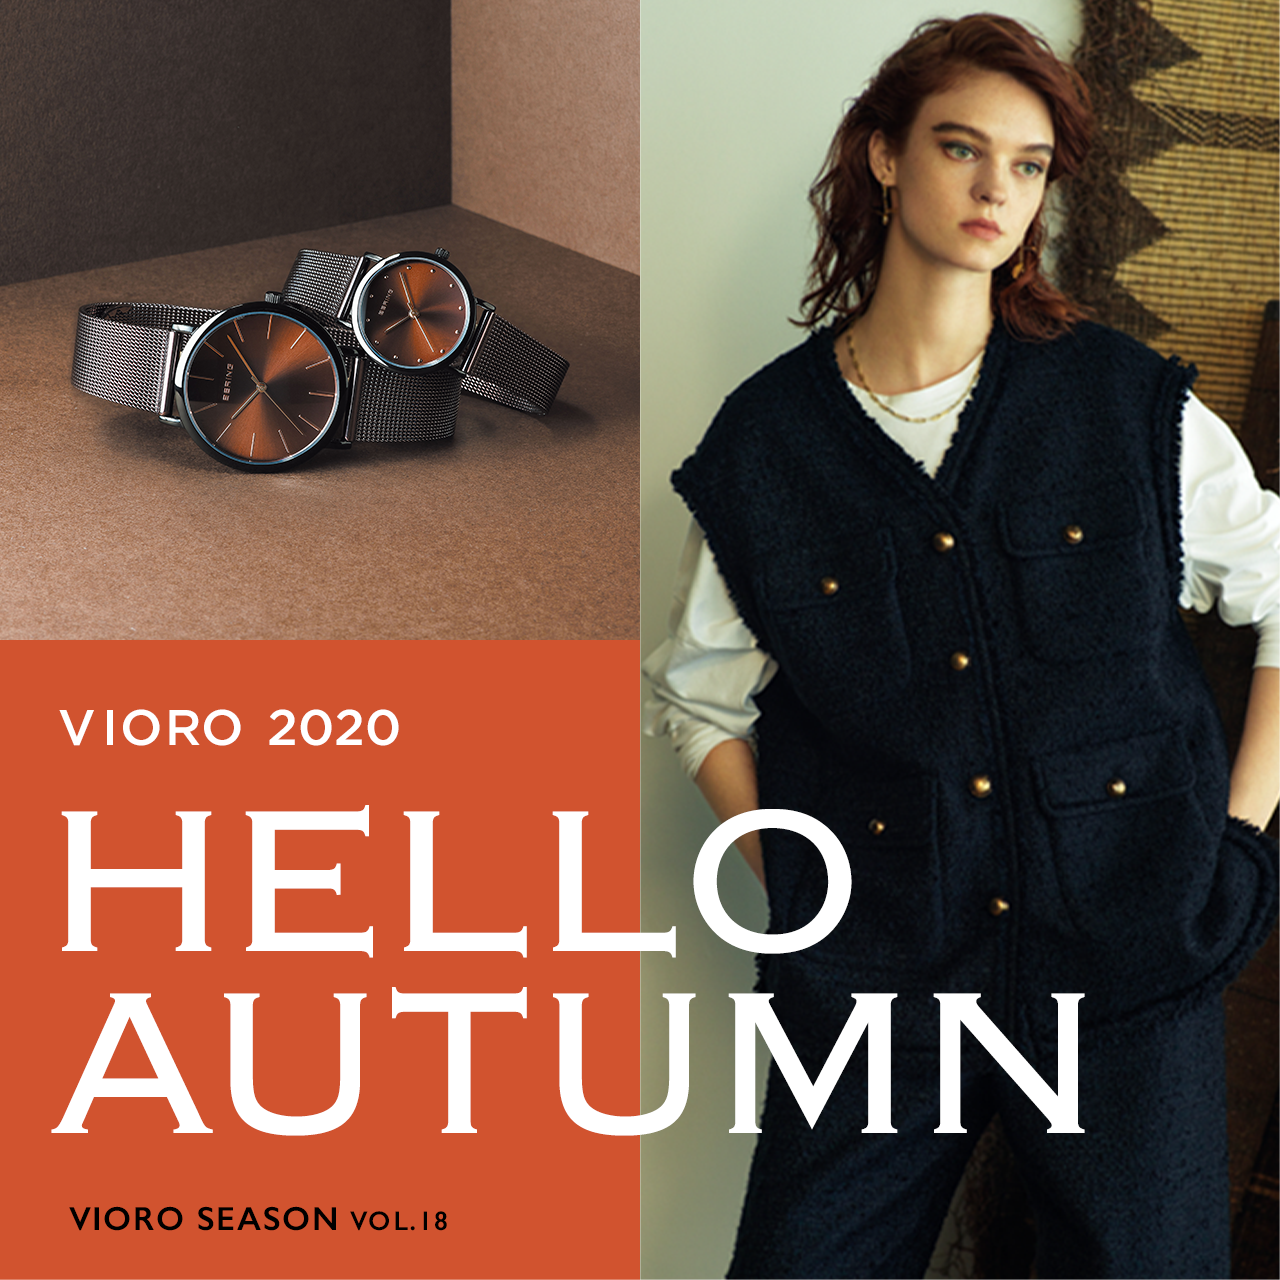 VIORO SEASON VOL.18